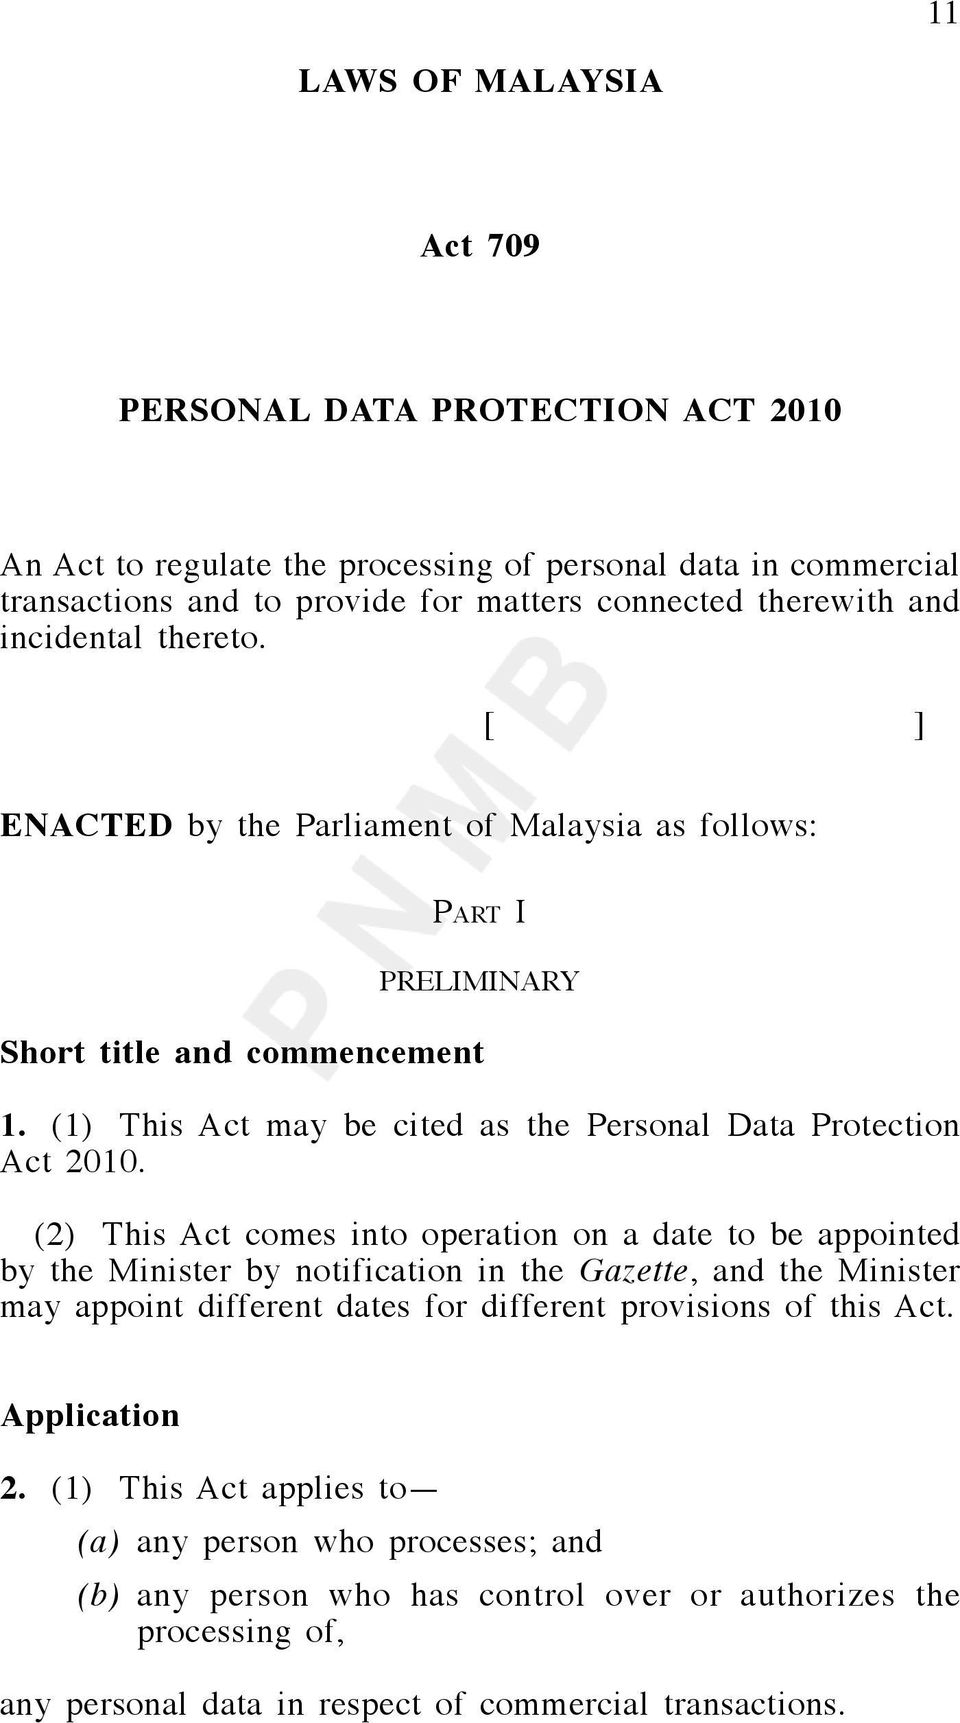 (2) This Act comes into operation on a date to be appointed by the Minister by notification in the Gazette, and the Minister may appoint different dates for different provisions of this Act.